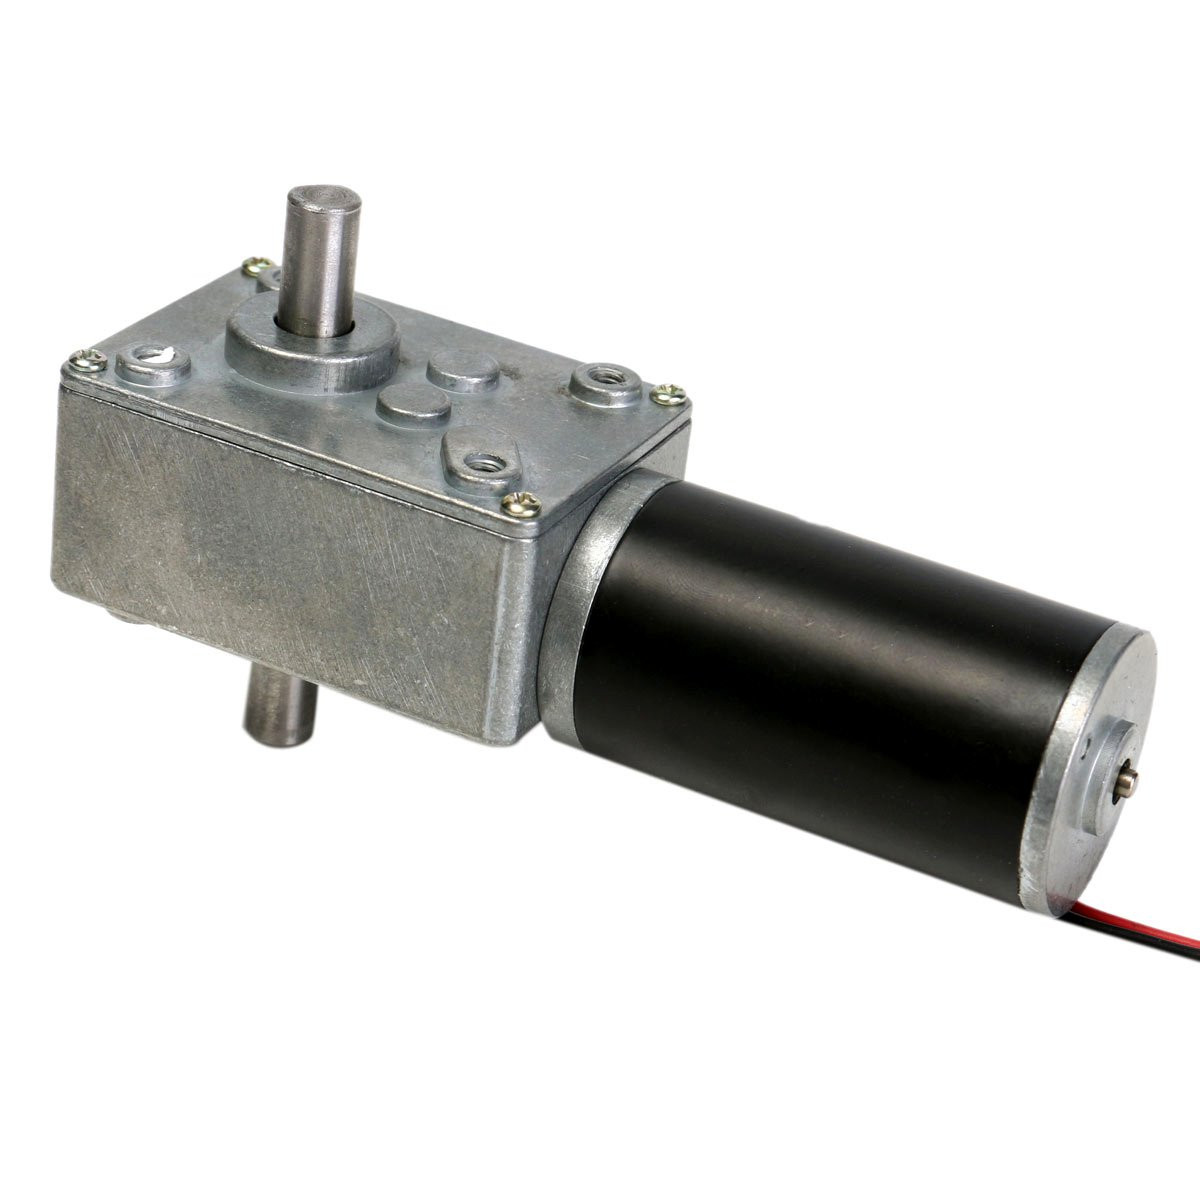 Buy 12V 160rpm Reduction Motor Worm Gear Double Shaft DC Cear-box